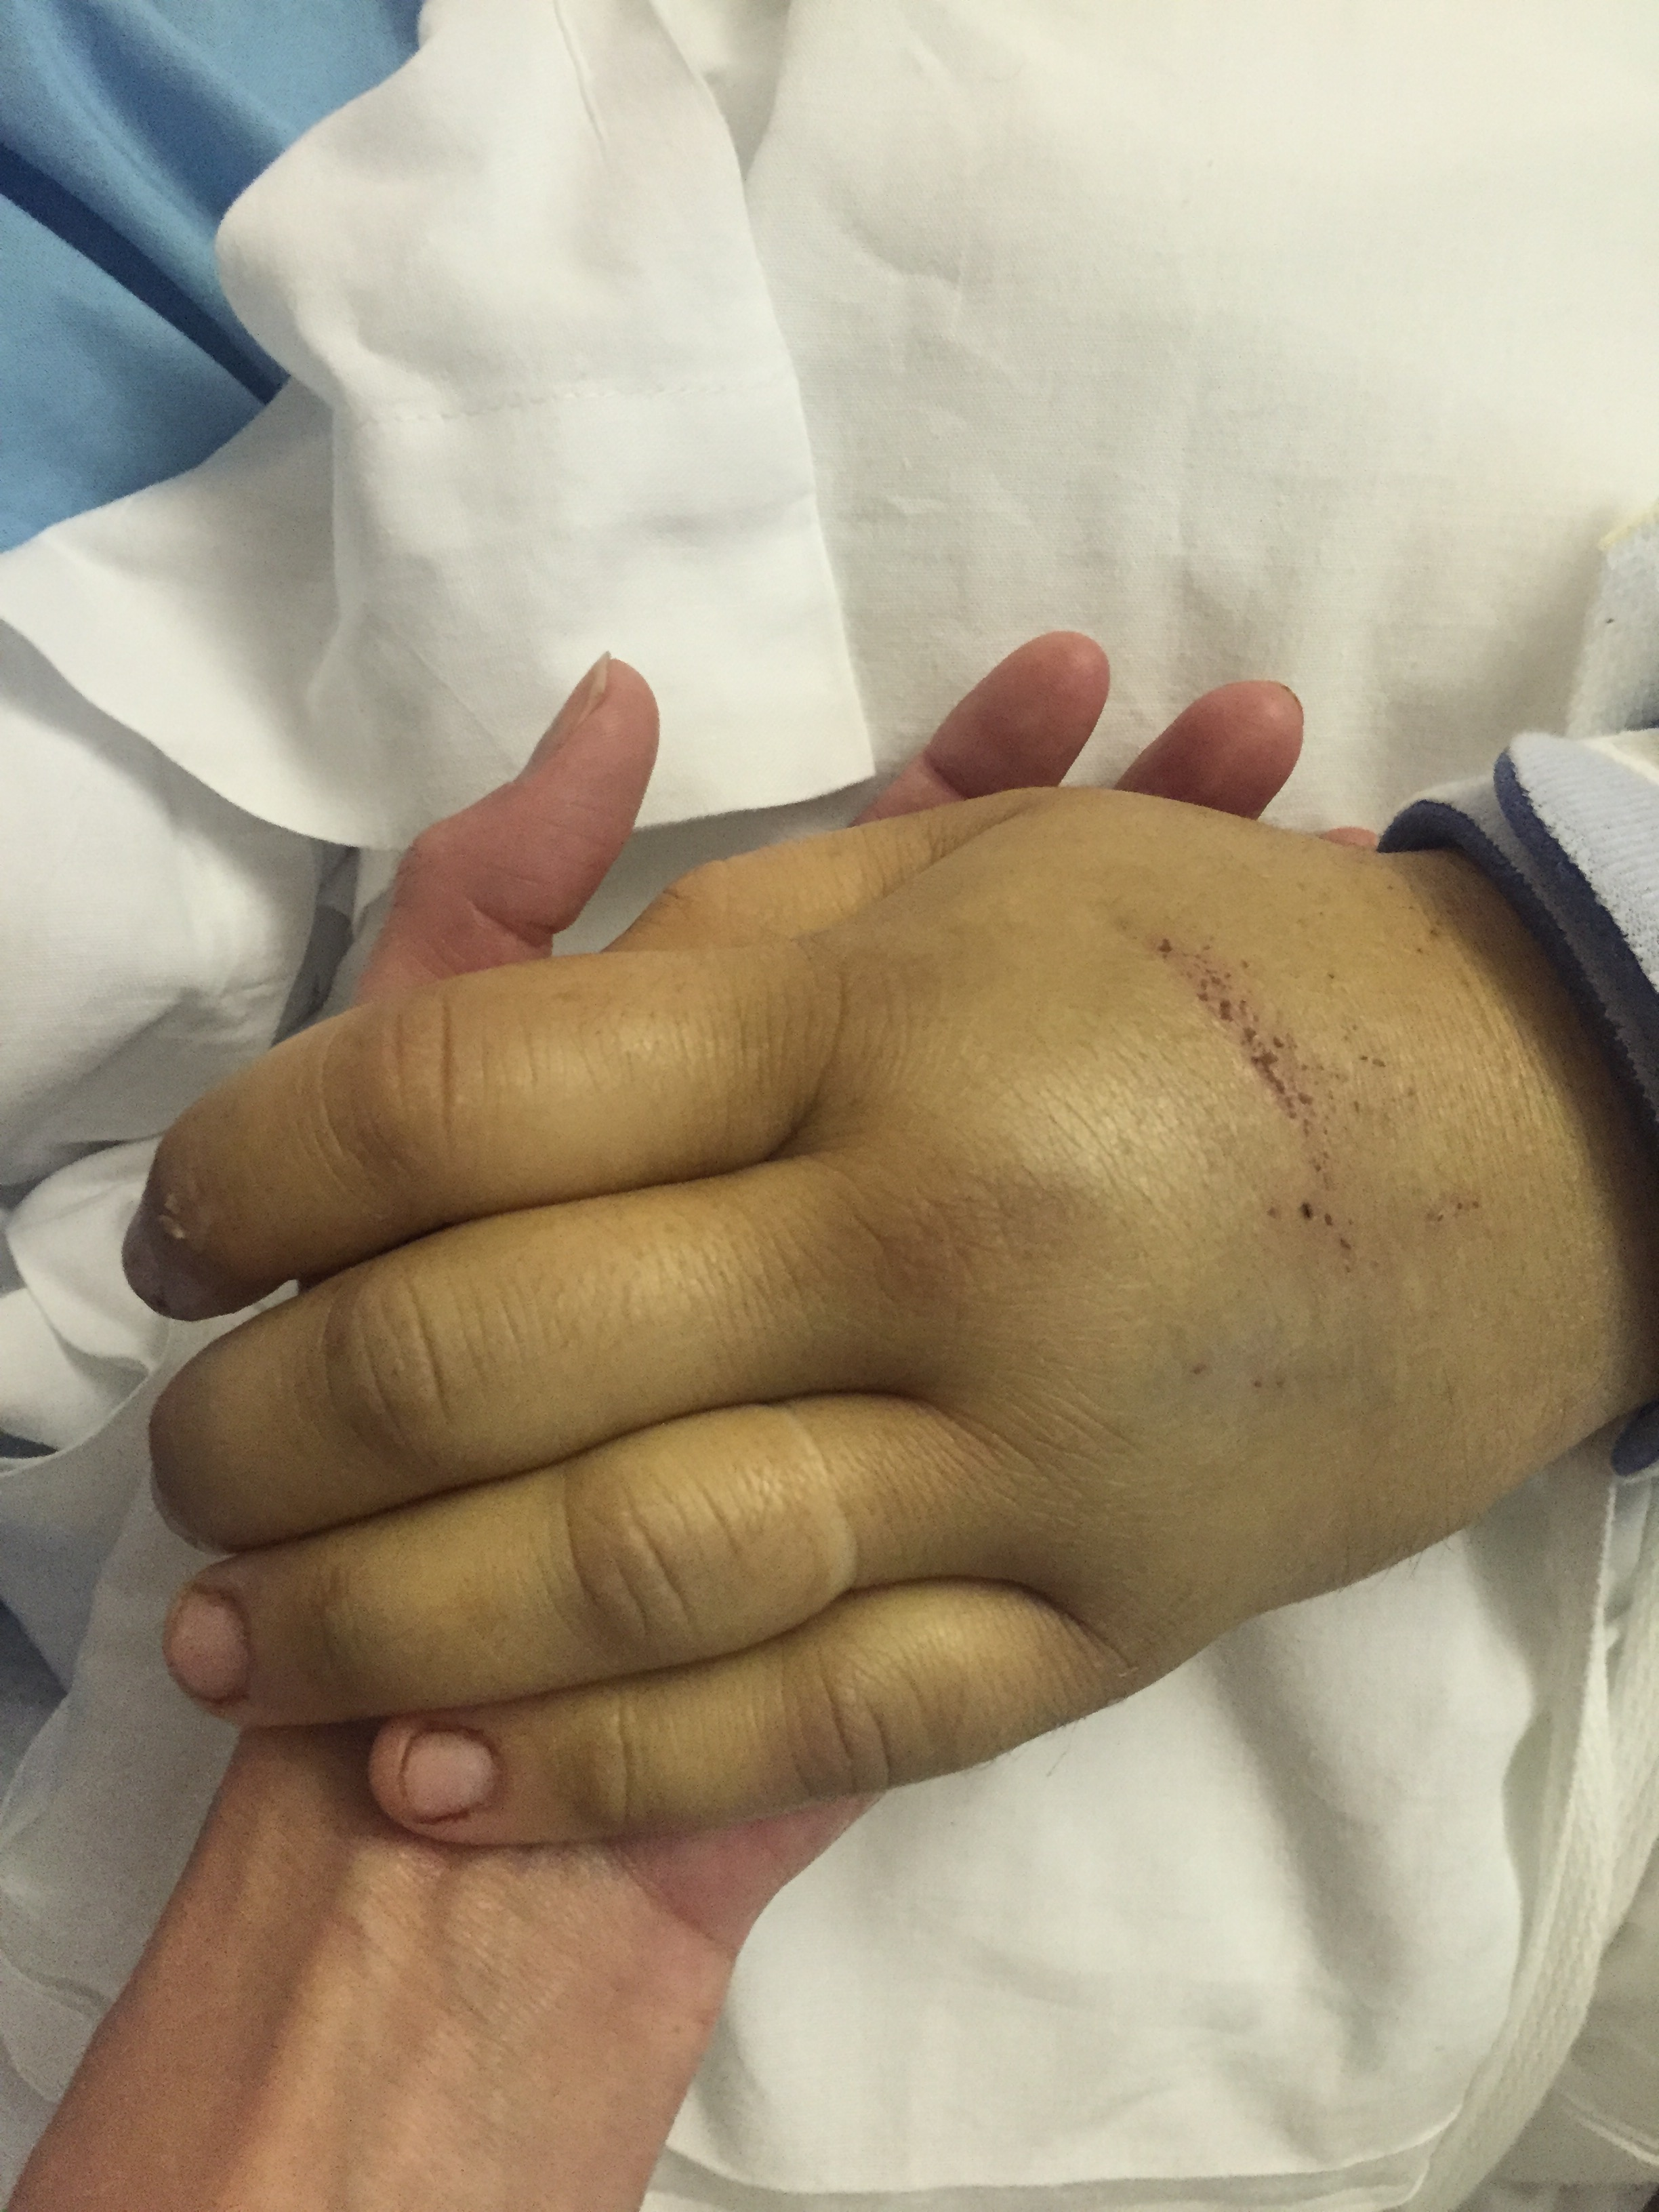 Rachel holding Michael's swollen and jaundiced hand during the recovery process.